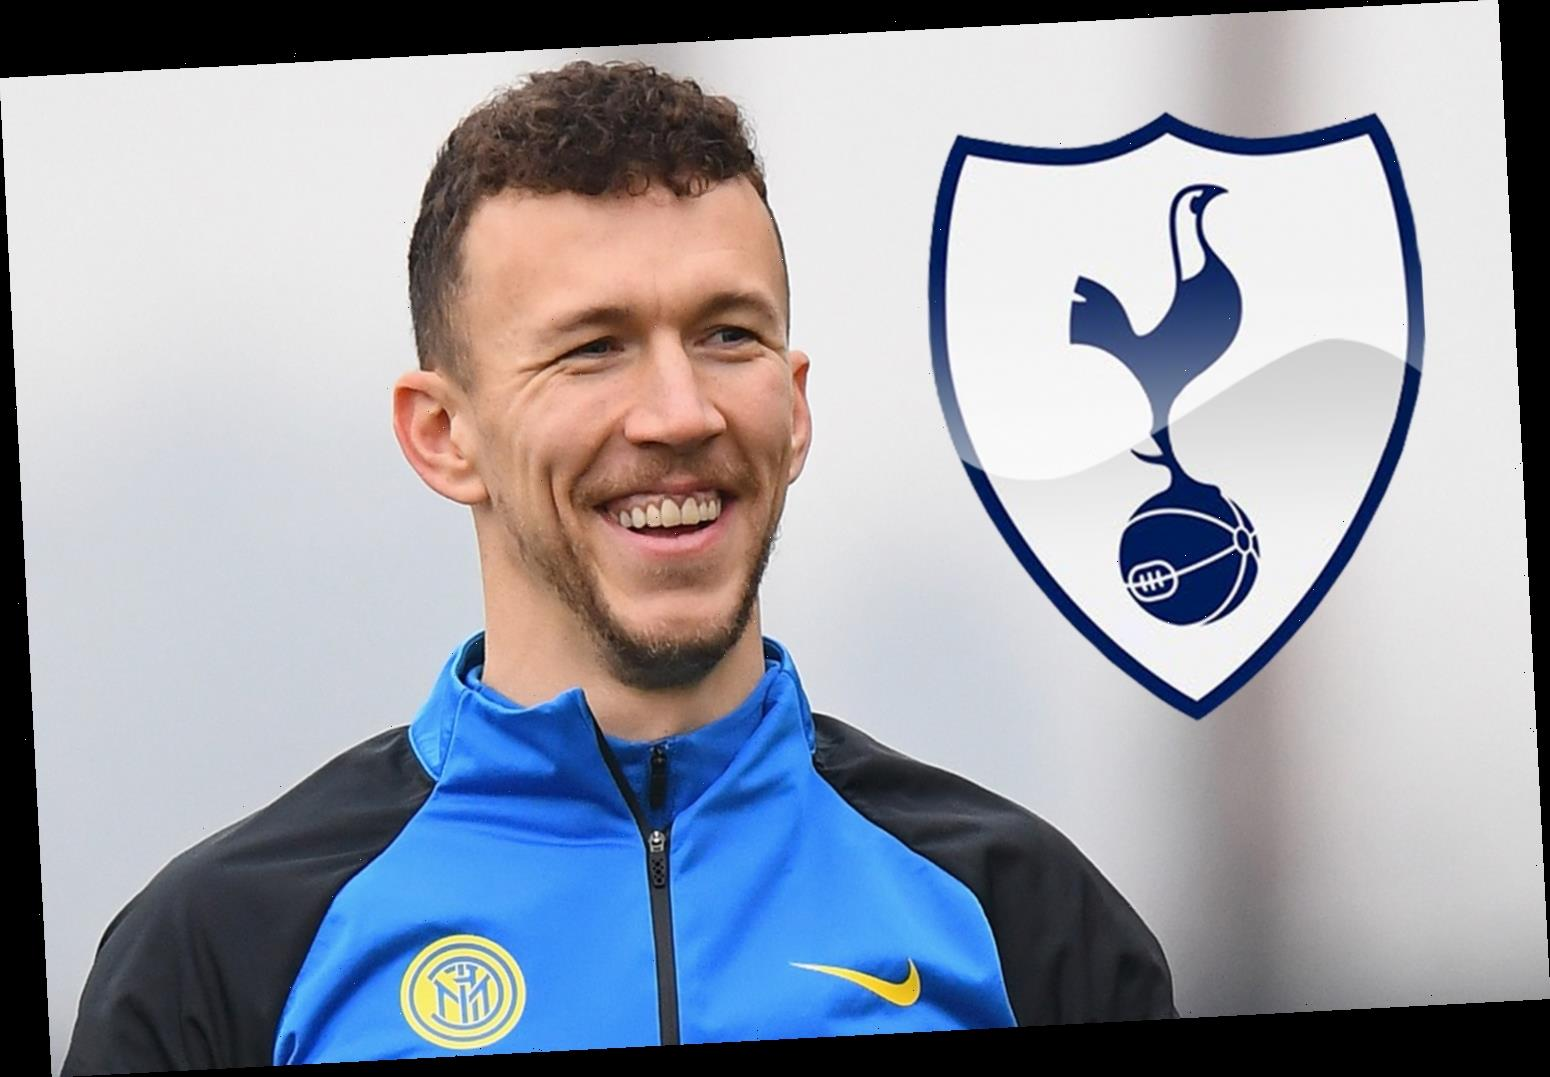 Tottenham 'holding transfer talks with Ivan Perisic' as Mourinho goes in again for ace after missing out at Man Utd